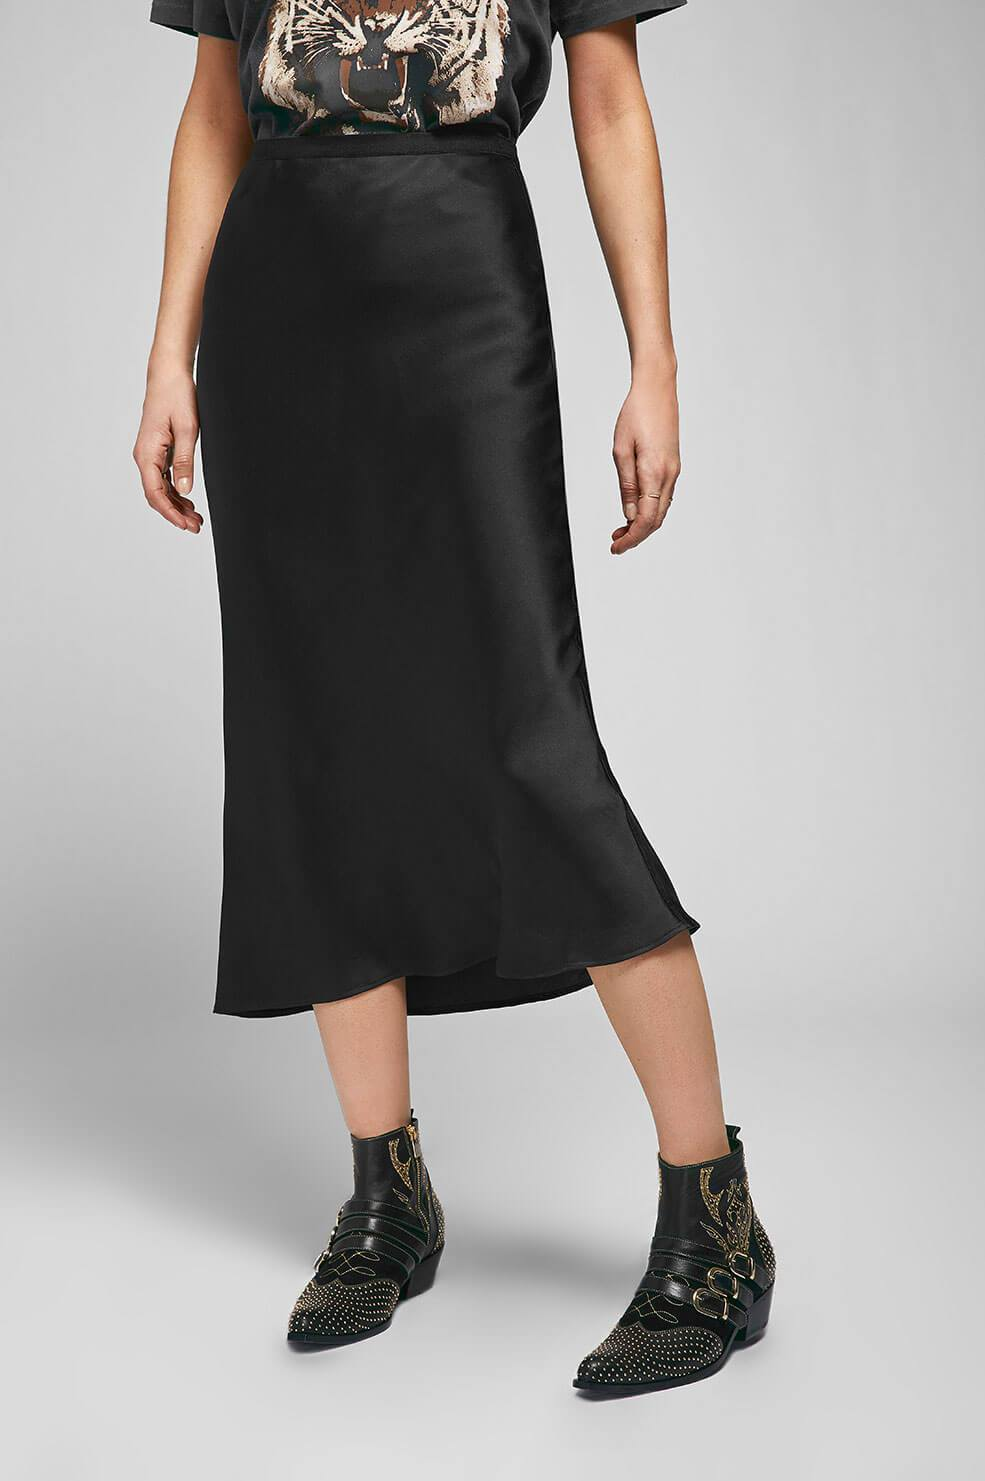 Anine Bing Womens Skirts Anine Bing | Bar Silk Skirt - Black